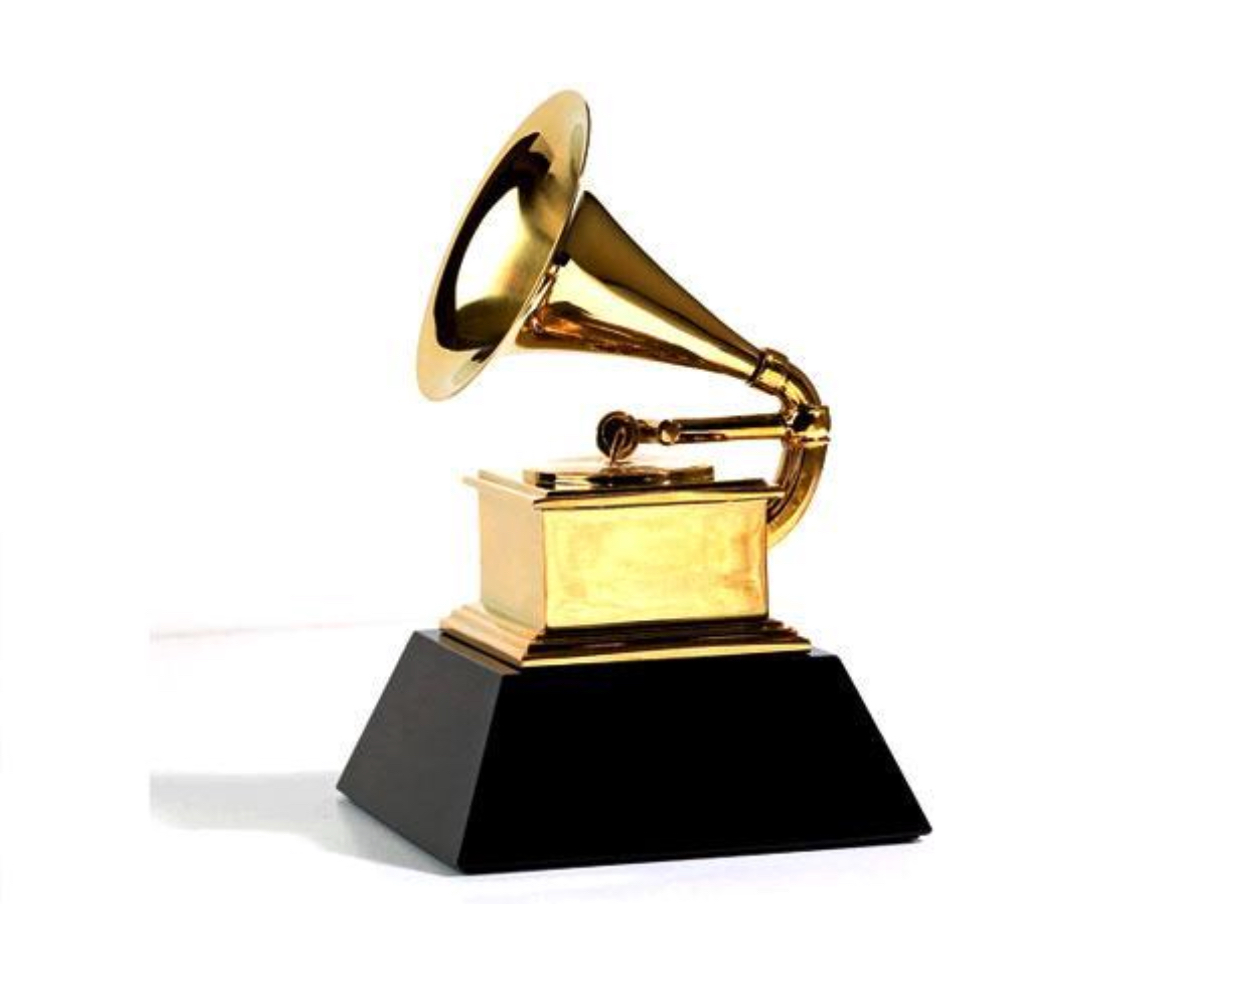 Grammy Award won by Warner Bros.